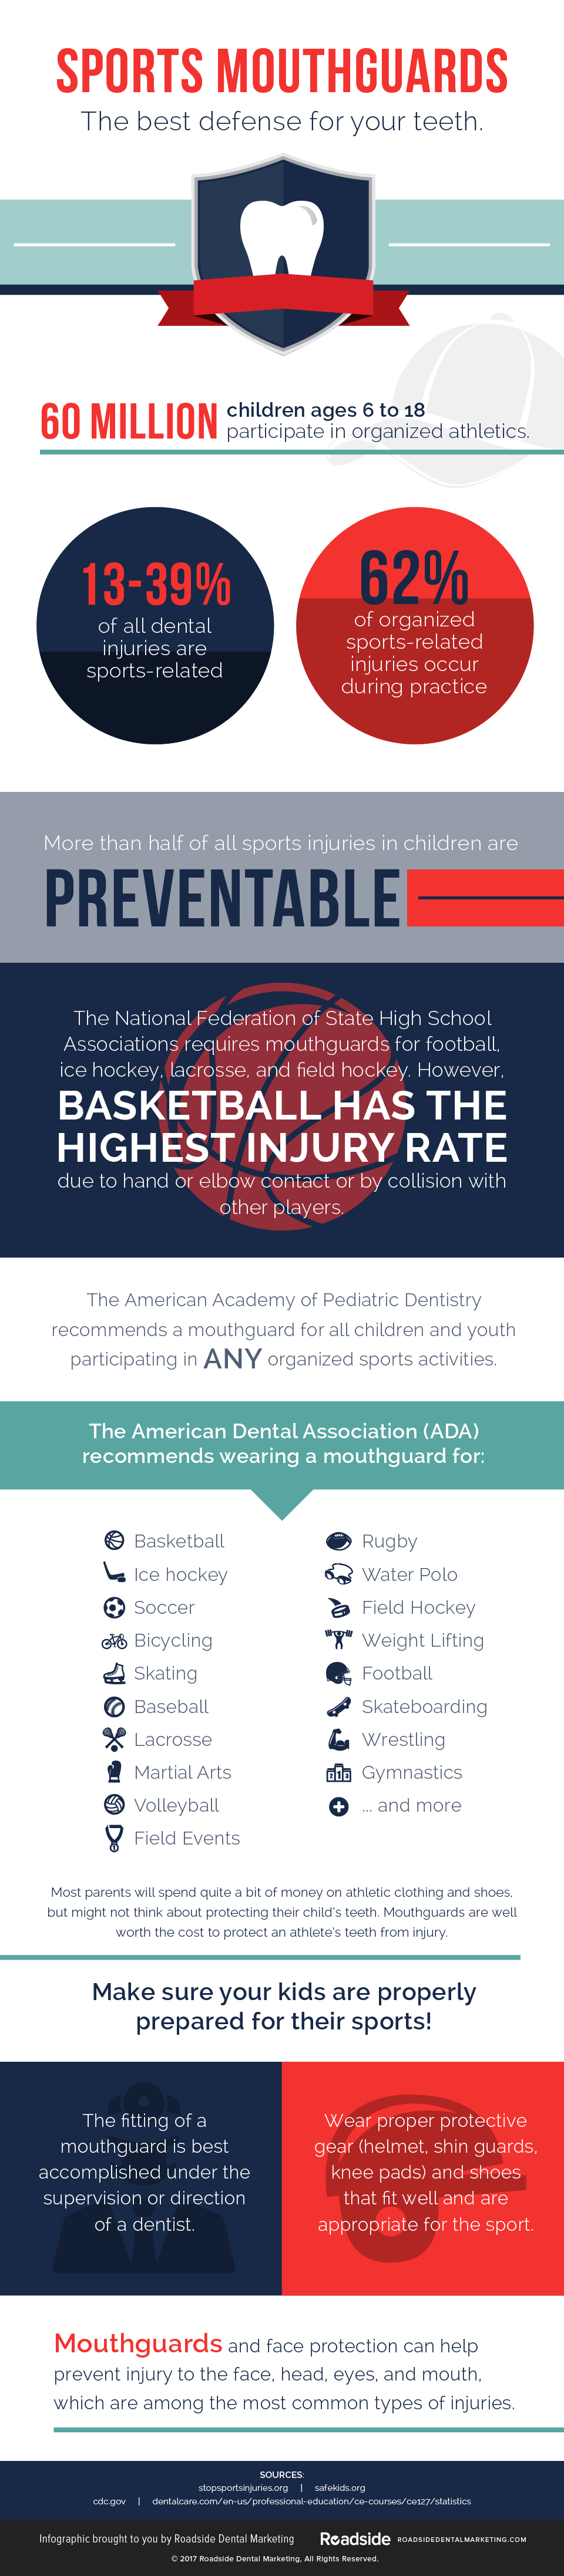 Infographic with sports mouthguards statistics